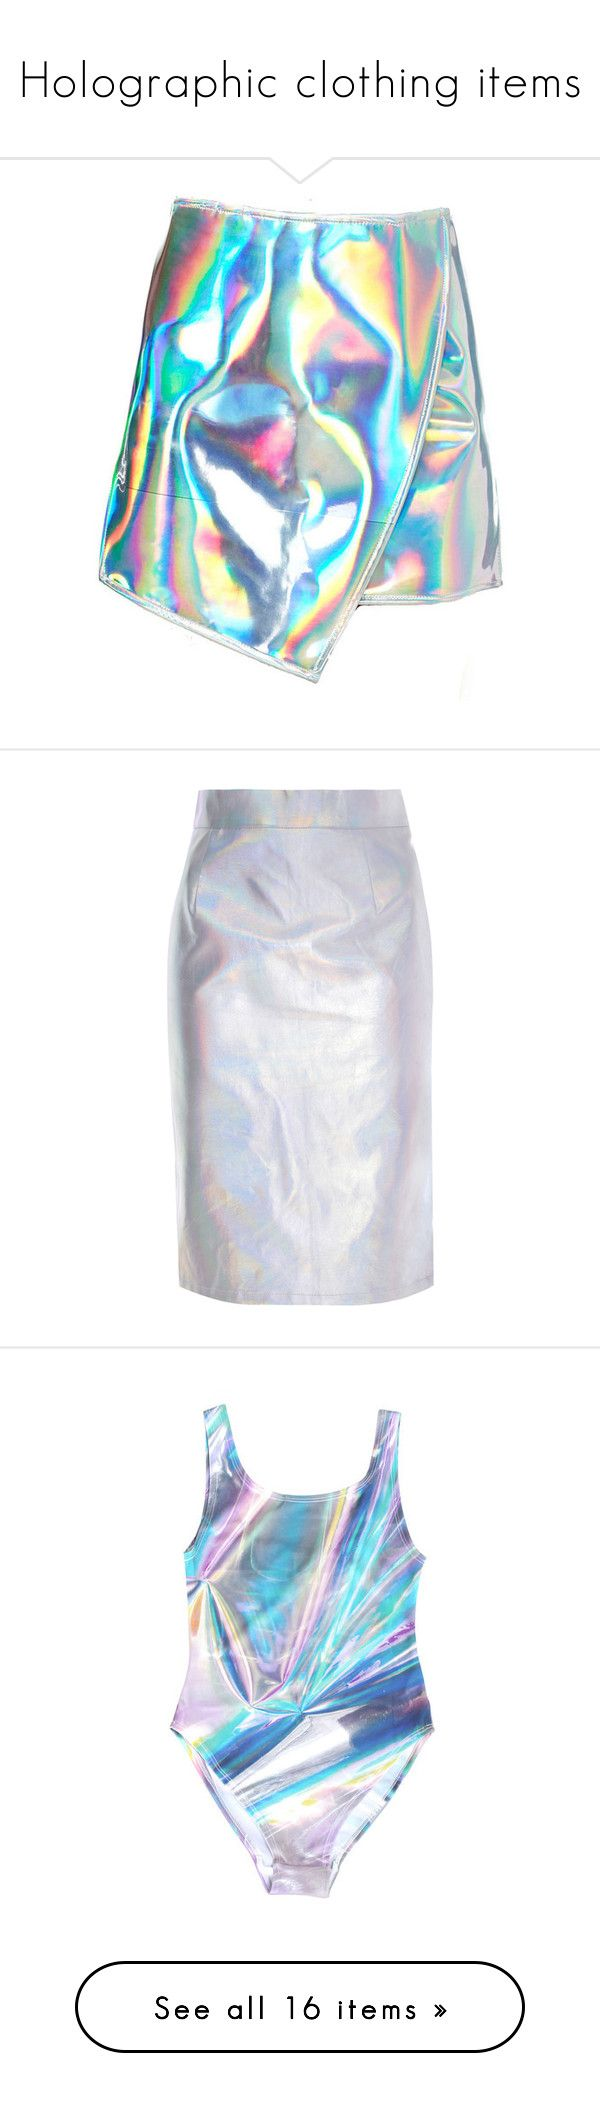 """""""Holographic clothing items"""" by luxuriouslyclassy ❤ liked on Polyvore featuring skirts, silver, hologram skirt, silver skirt, high rise pencil skirt, knee length pencil skirt, high waisted knee length skirt, swimwear, one-piece swimsuits and 1 piece swim suit"""